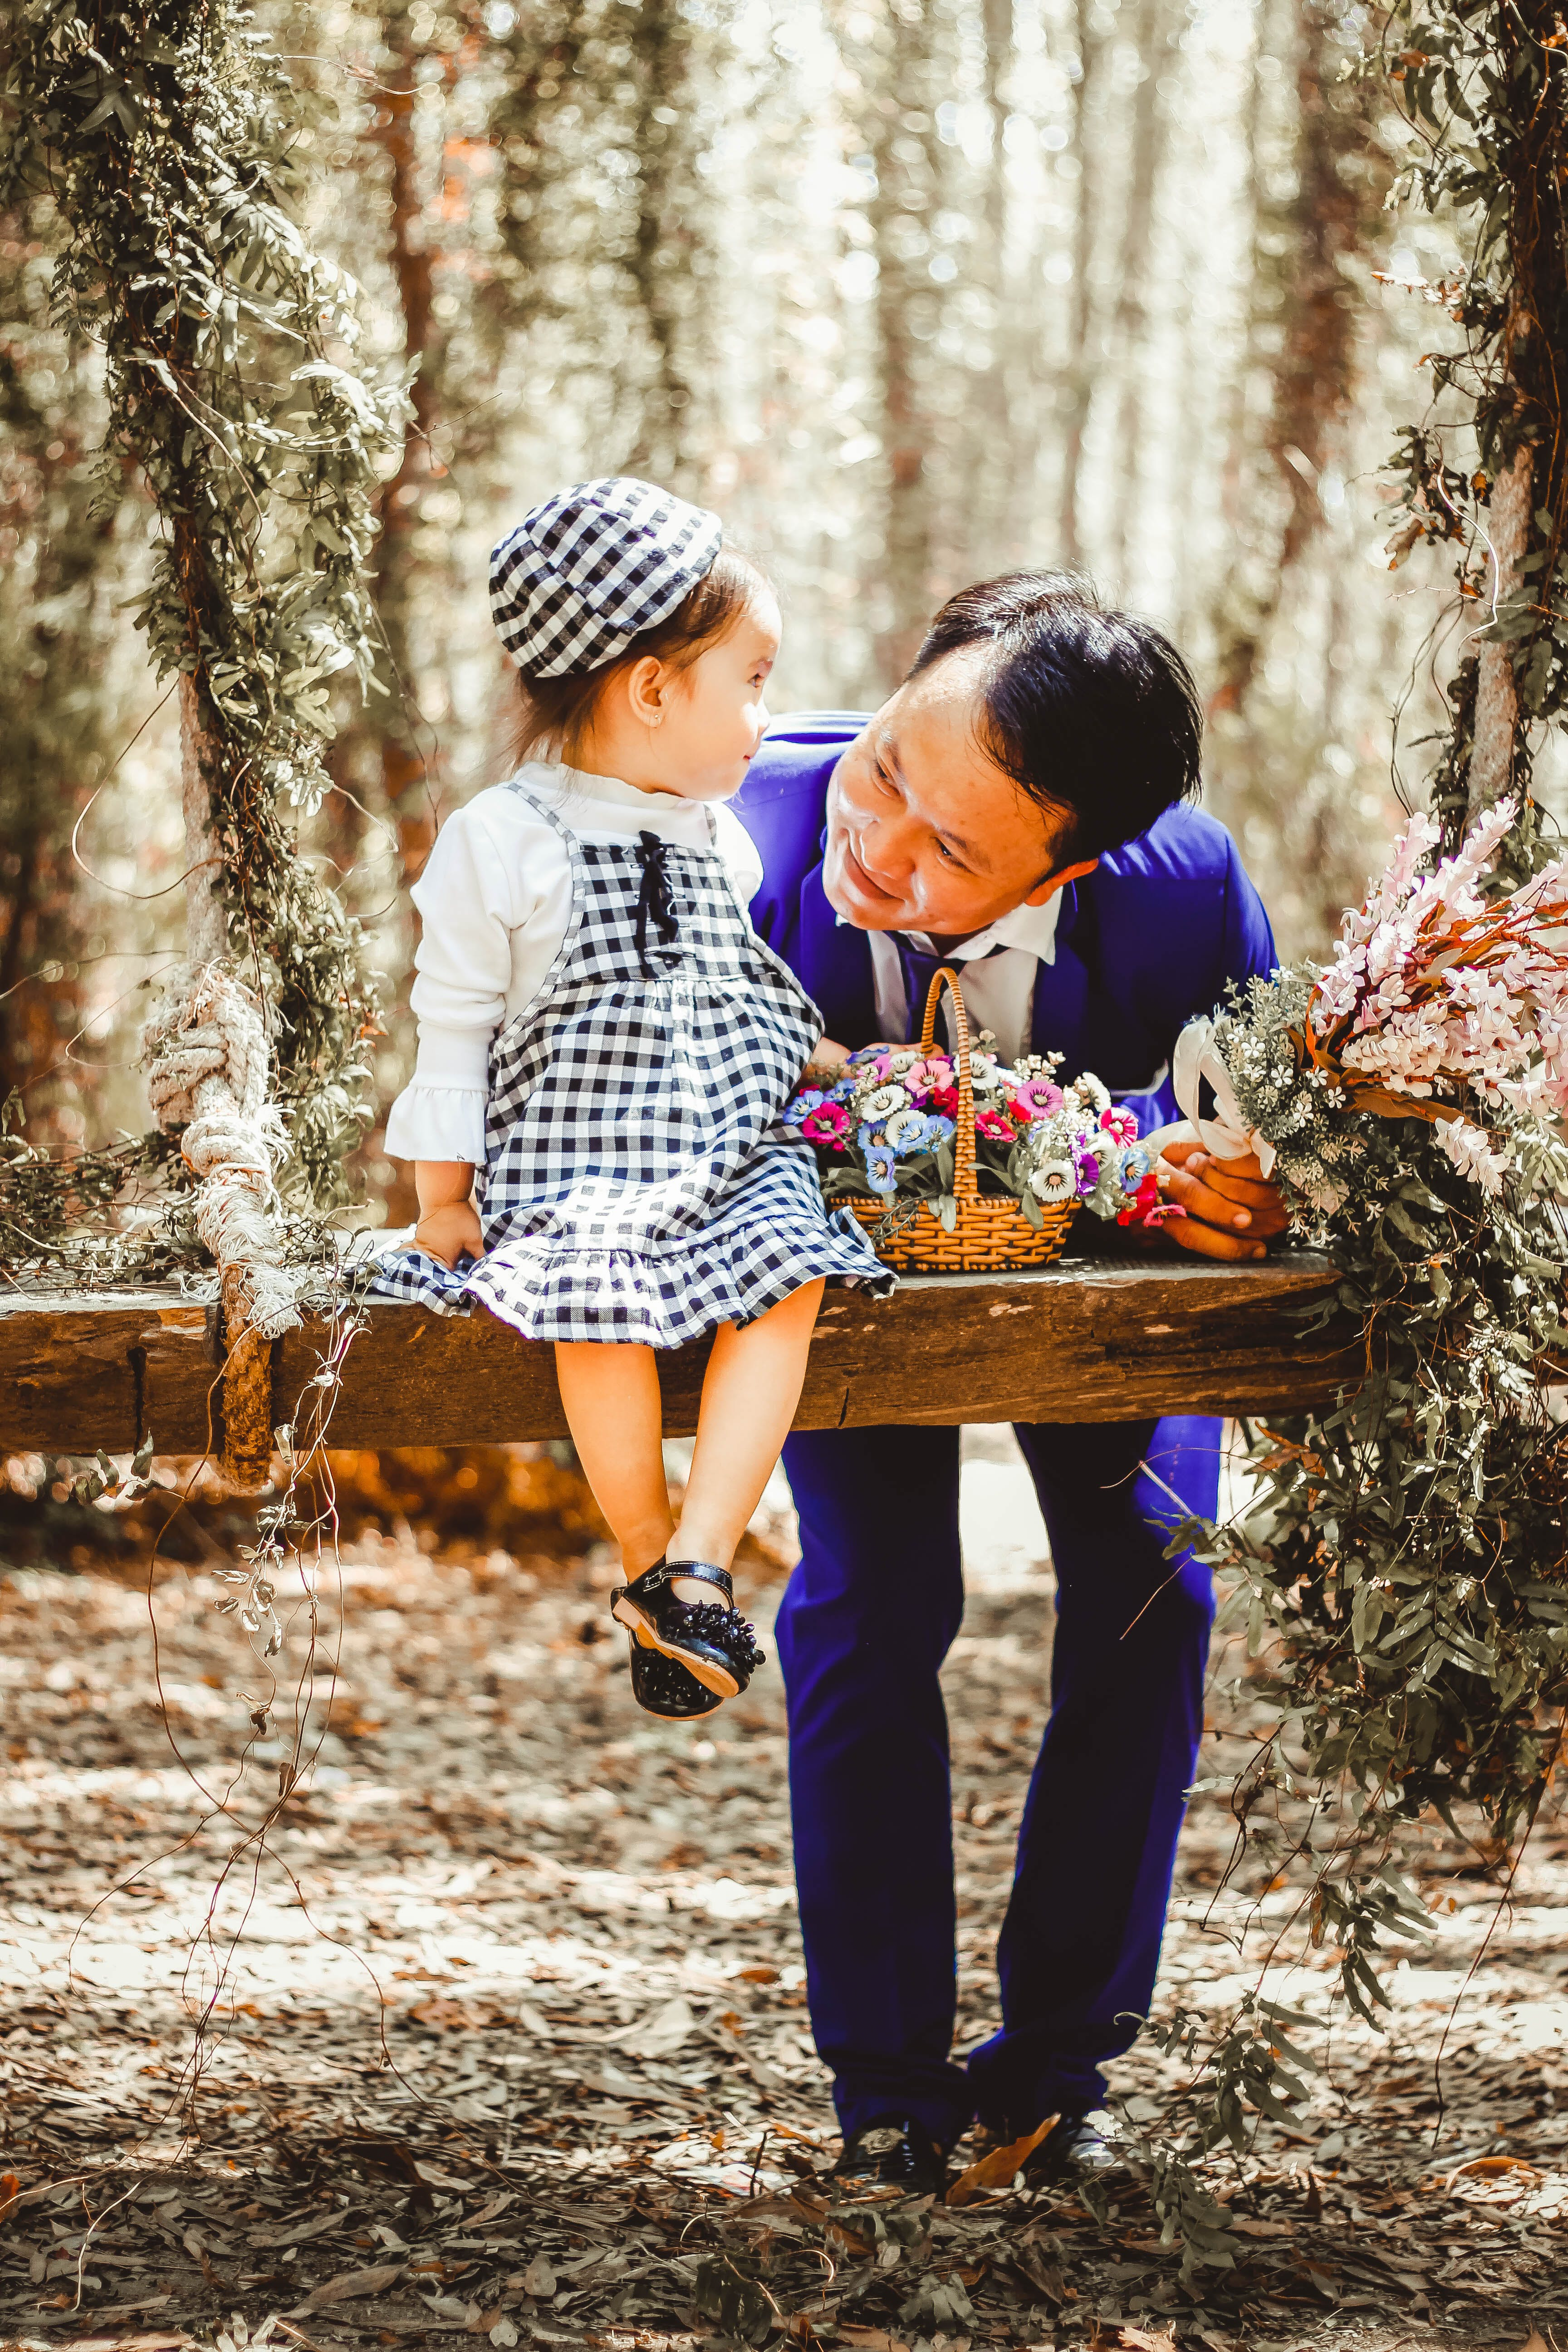 Selective Focus and Color Photography of a Dad Looking at Her daughter Sitting on Garden Swing White Holding Bouquet of Flower in Brown Wicker Basket